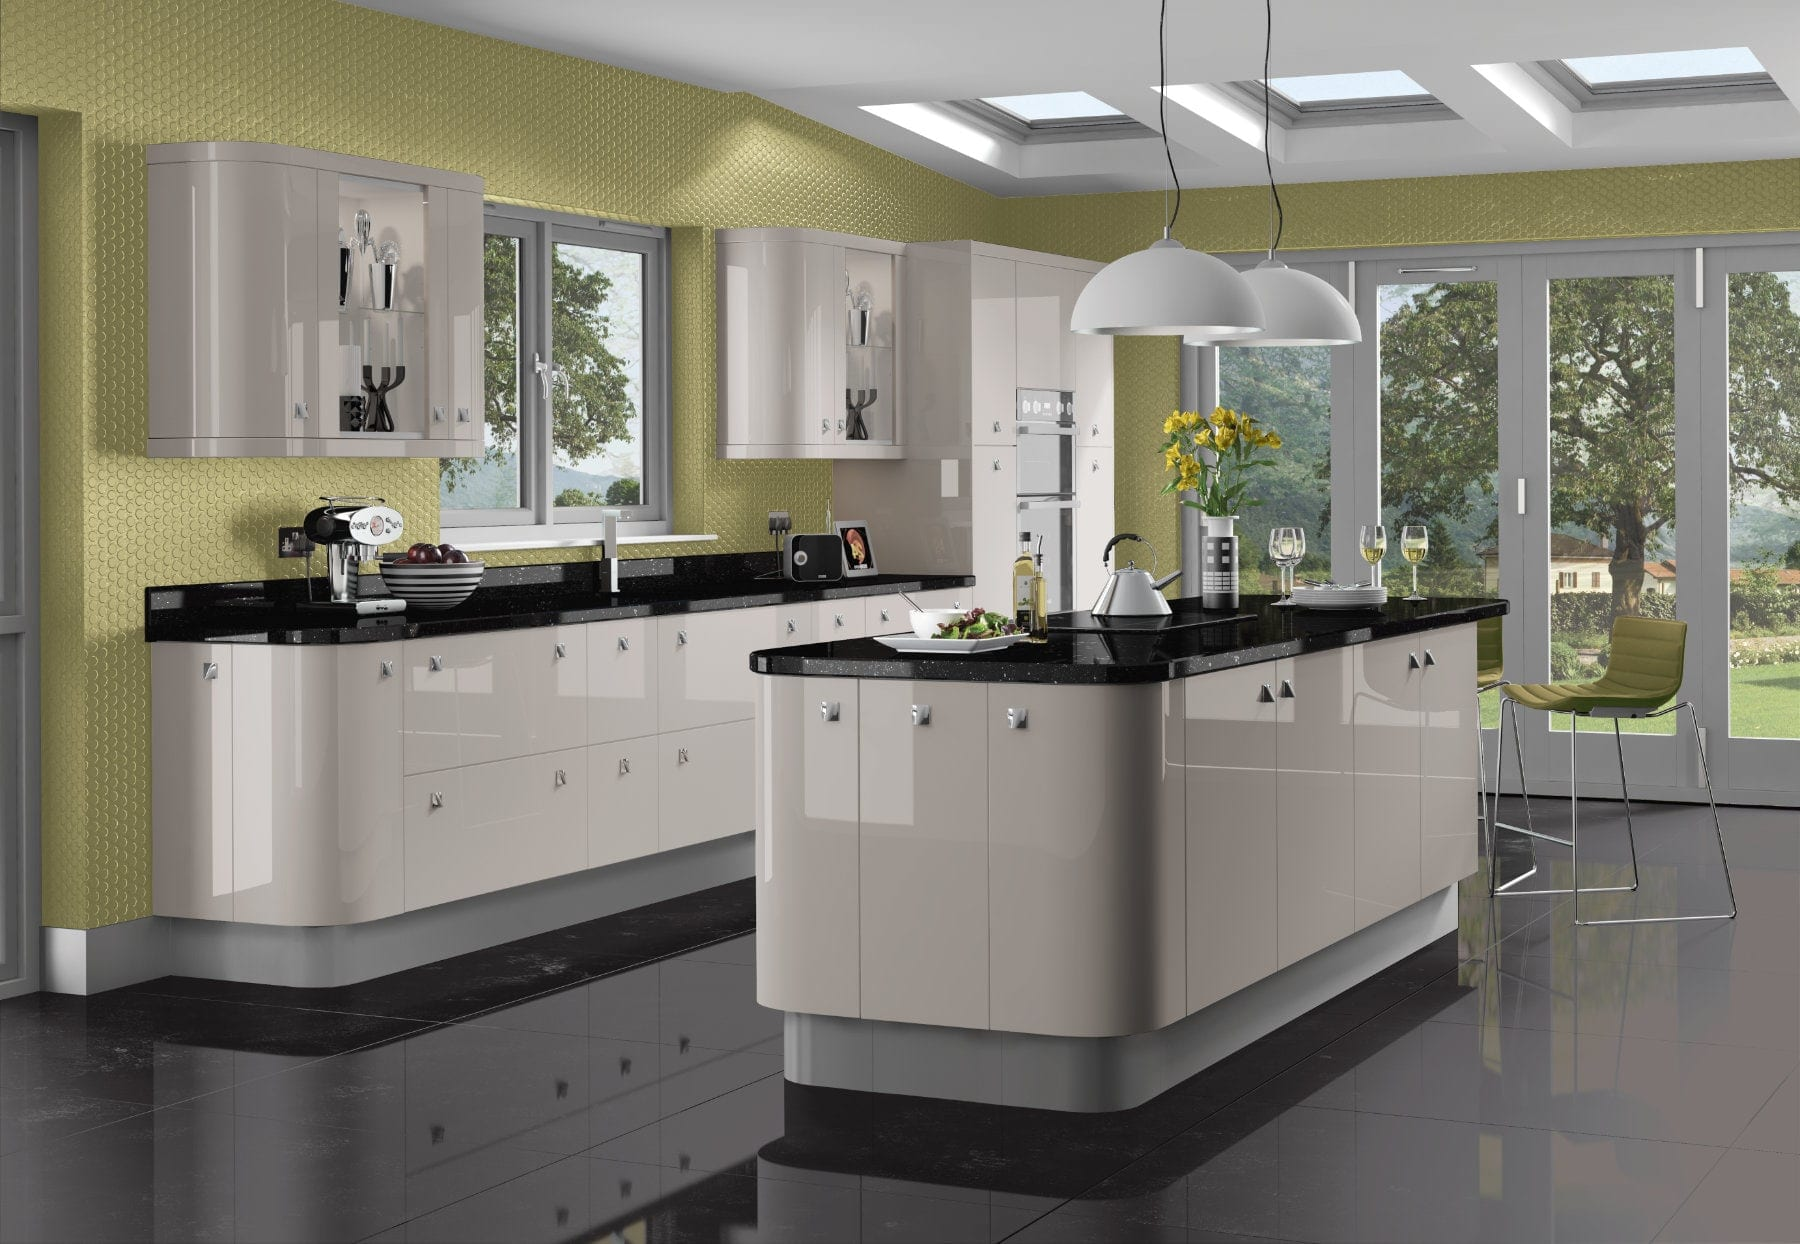 Jjo Kashmir Open Plan Kitchen With Island | Right Choice Kitchens, South Wales